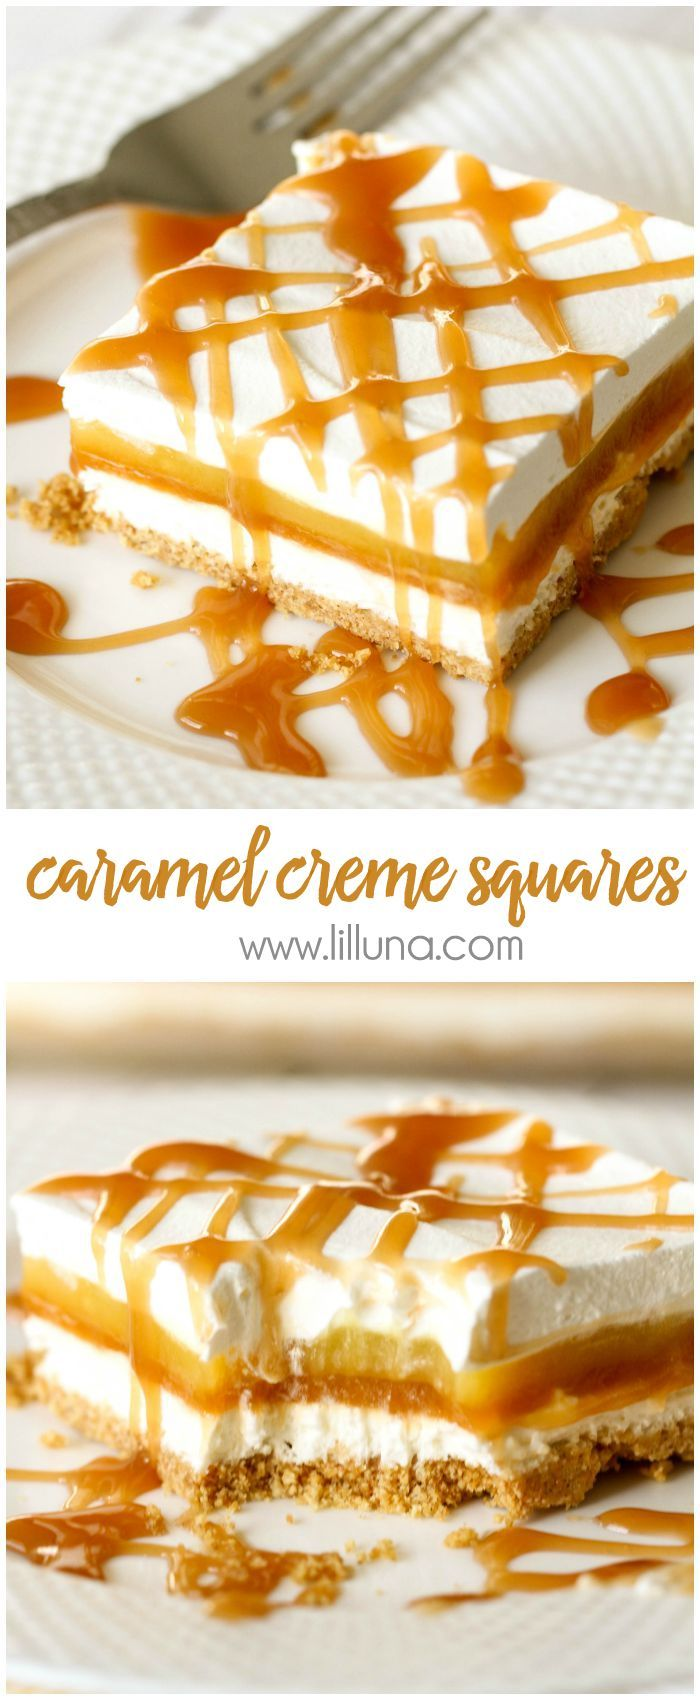 Caramel Creme Squares - 5 delicious layers including graham cracker crumbs, cream cheese, butterscotch and vanilla pudding and topped with Cool Whip and caramel! YUM!!